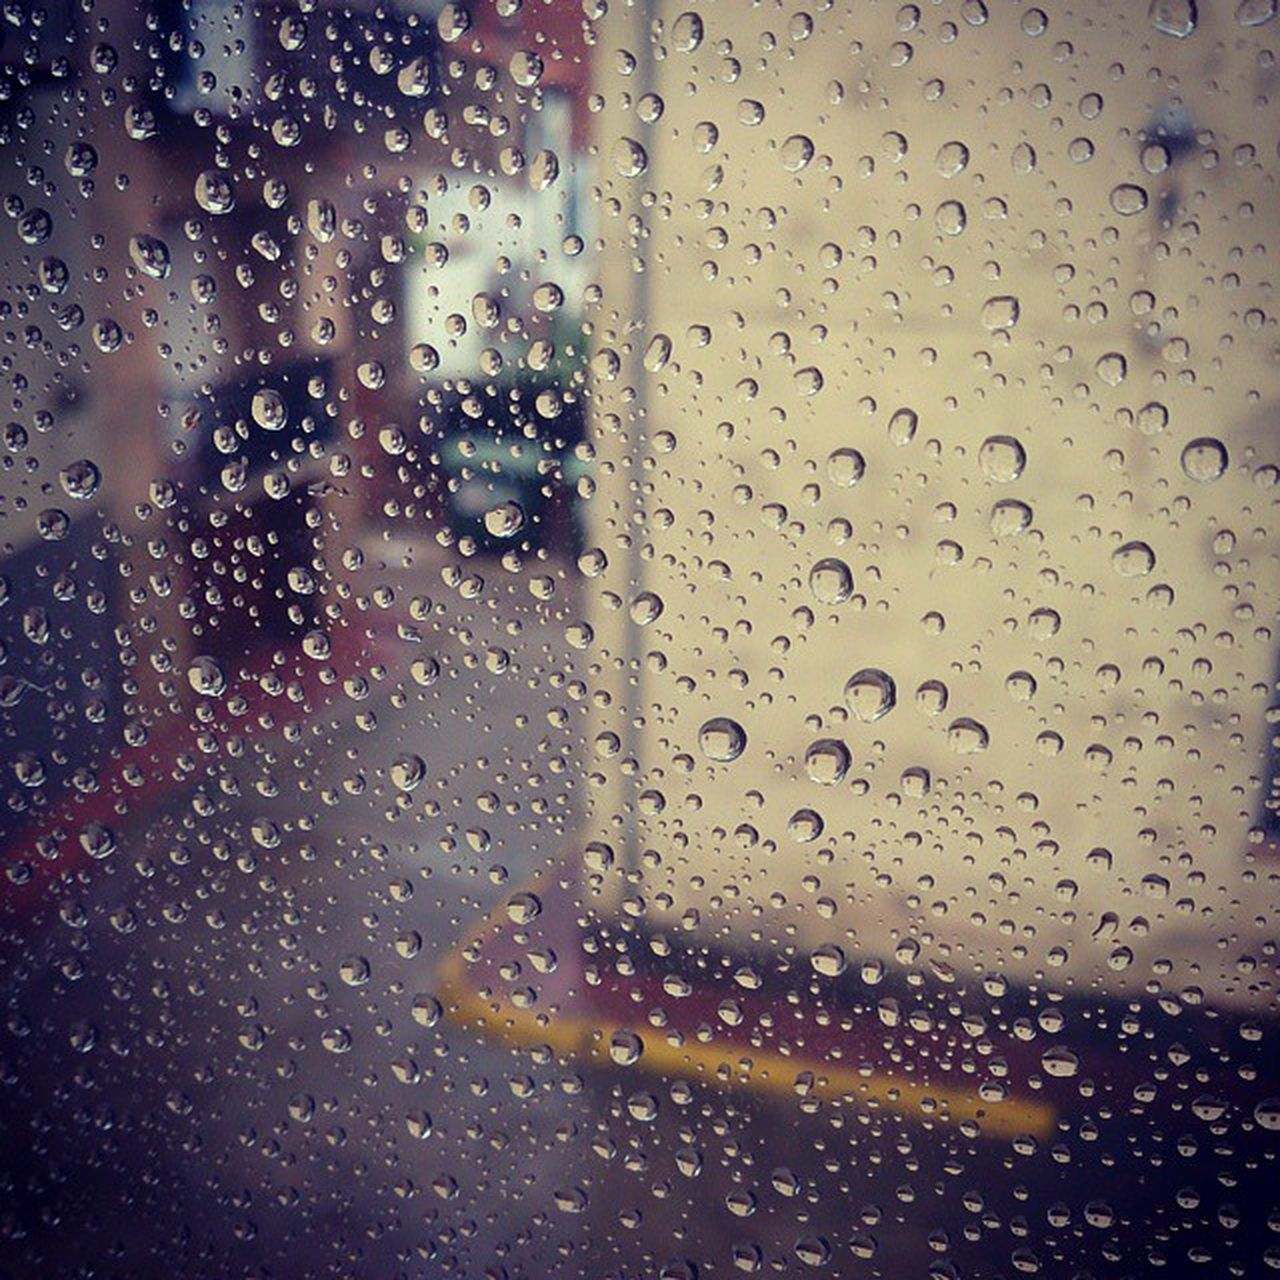 window, drop, glass - material, transparent, wet, rain, water, full frame, raindrop, indoors, vehicle interior, no people, glass, backgrounds, rainy season, weather, close-up, droplet, land vehicle, transportation, car, mode of transport, car interior, focus on foreground, built structure, sky, day, architecture, nature, airplane wing